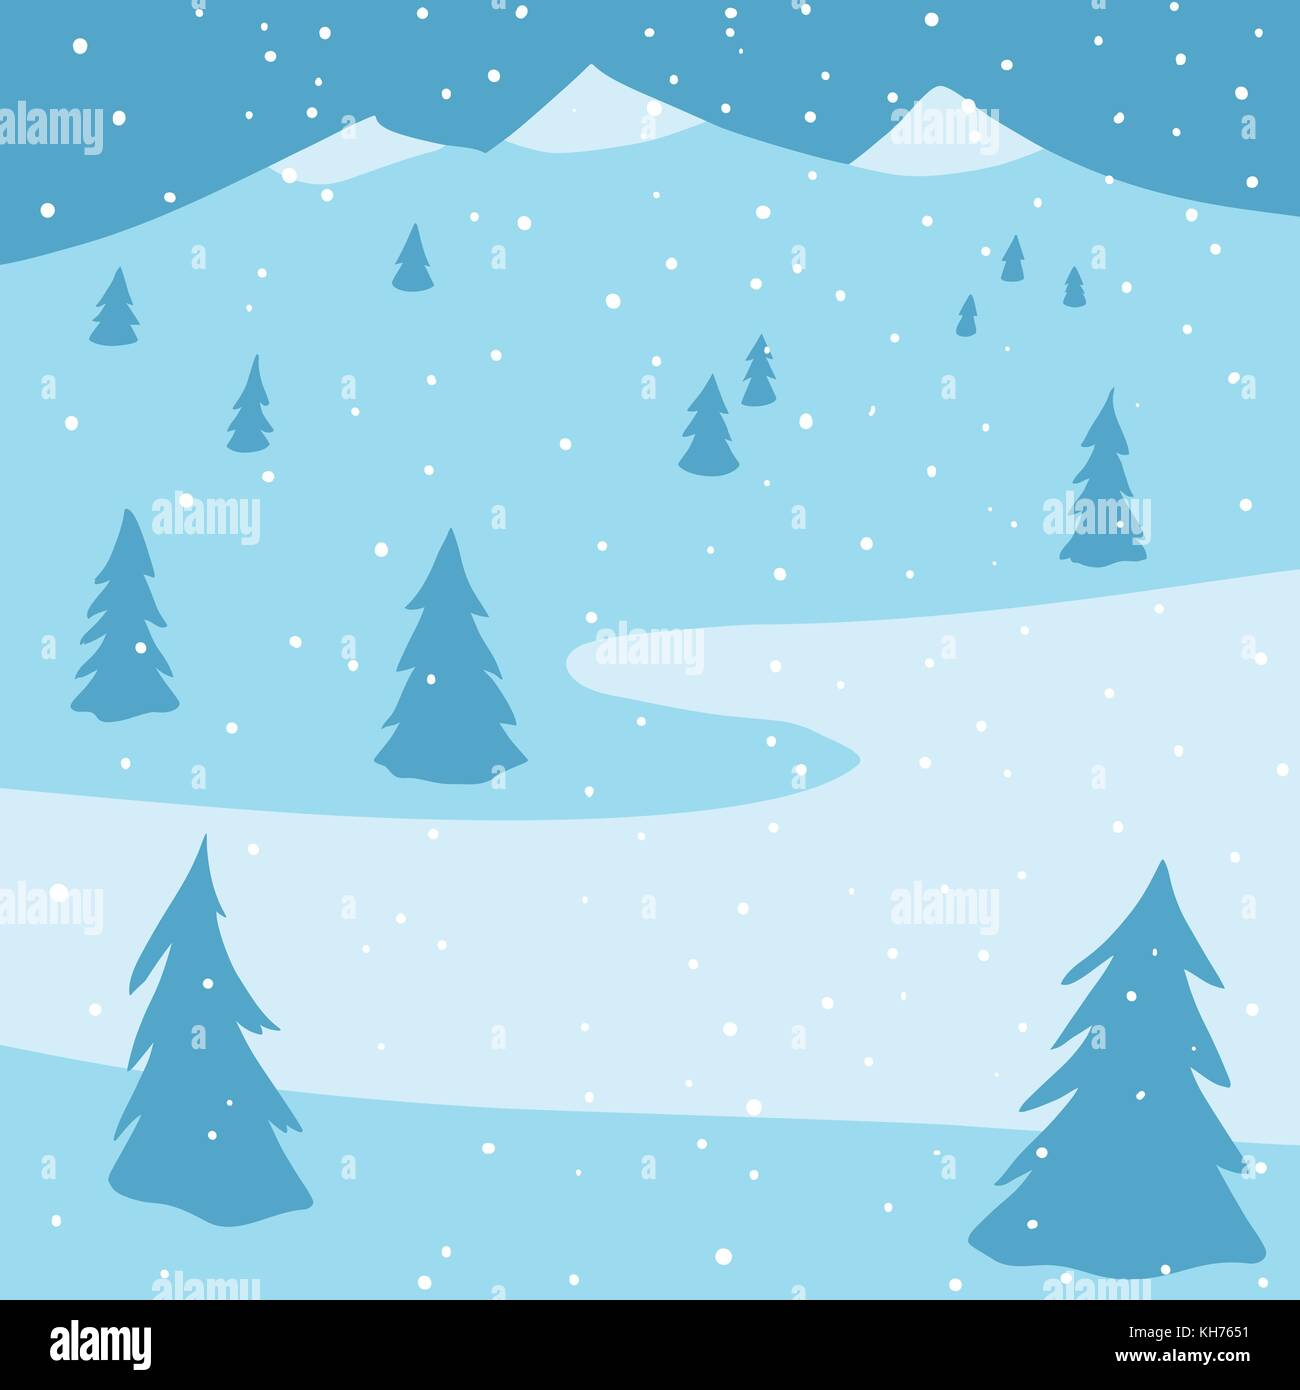 Winter landscape with spruces, mountains and snow - Stock Vector